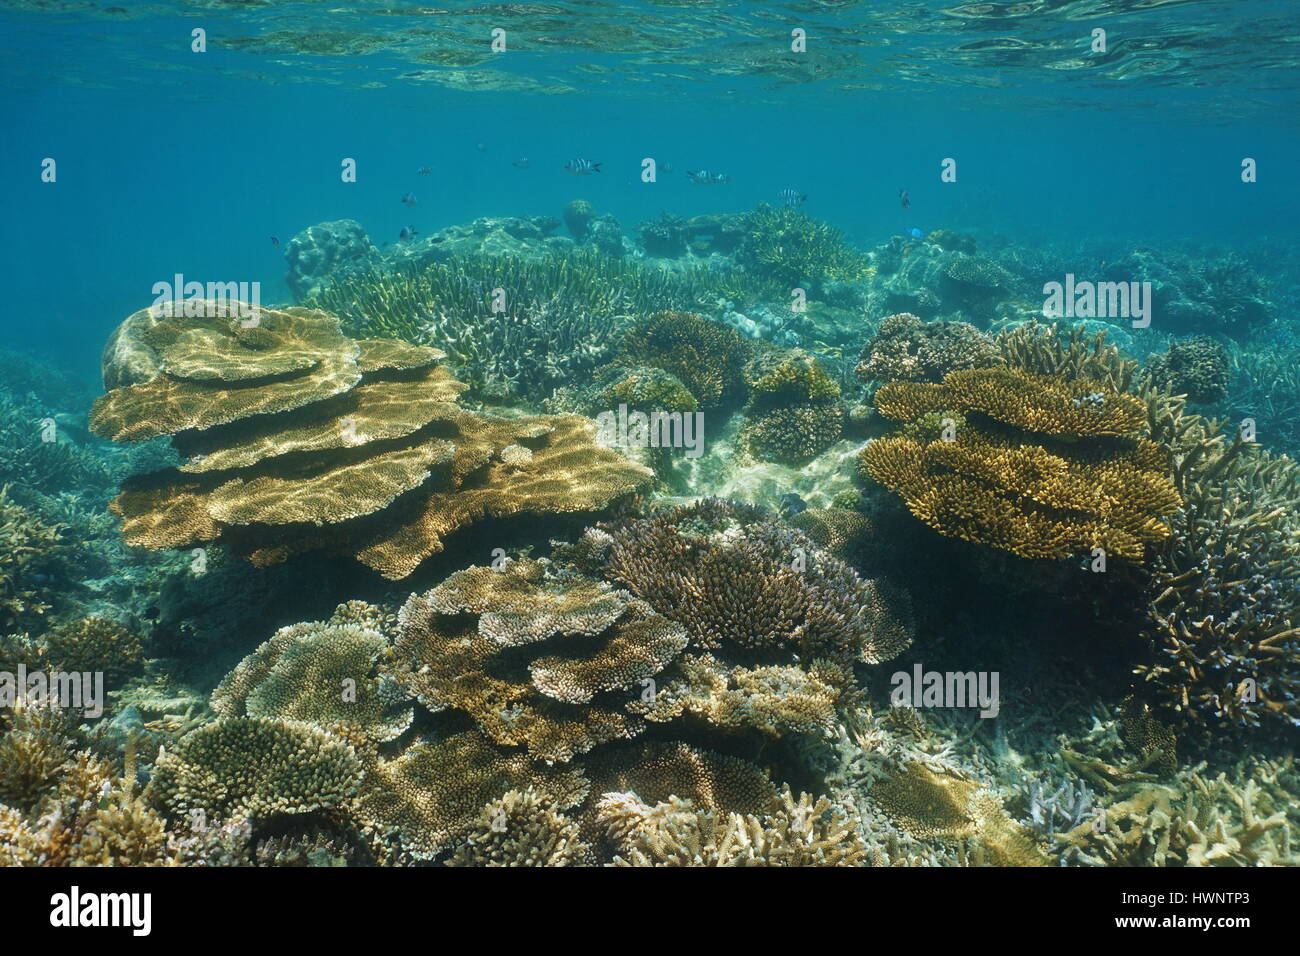 Coral reef of New Caledonia underwater in the lagoon of Grande-Terre island, south Pacific ocean, Oceania - Stock Image